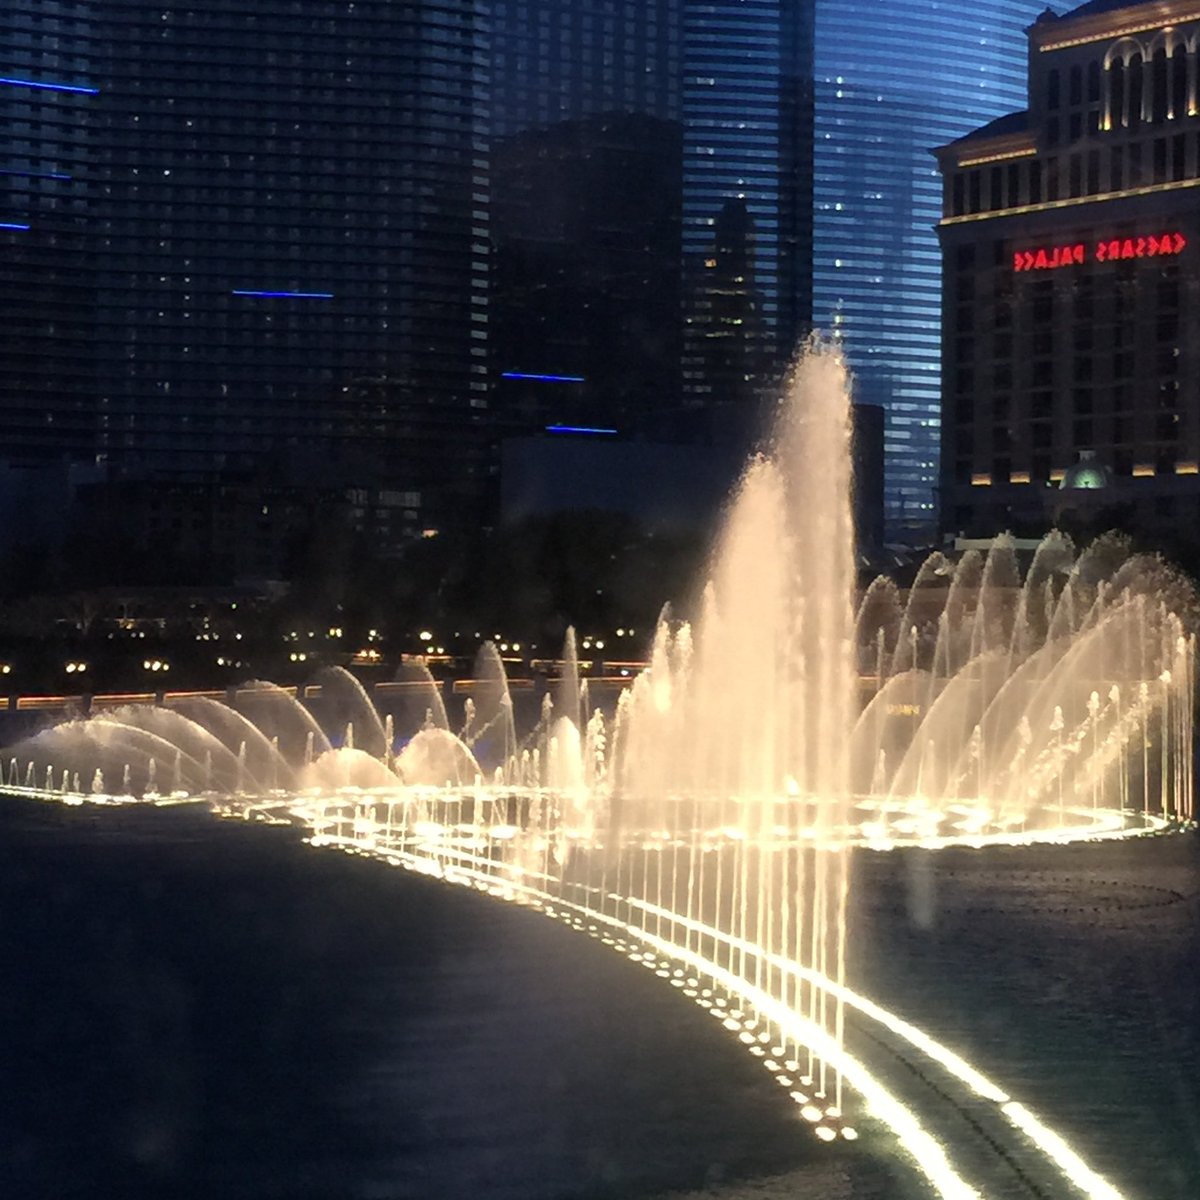 This Fountain Dancing with Music at Las Vegas Too is very awesome friend just as U described in ur tweet . Similar is the dancing fountain at Dubai Mall too which Our friend @dewanderersoul  shared earlier .pic.twitter.com/VhoS6c1XAD